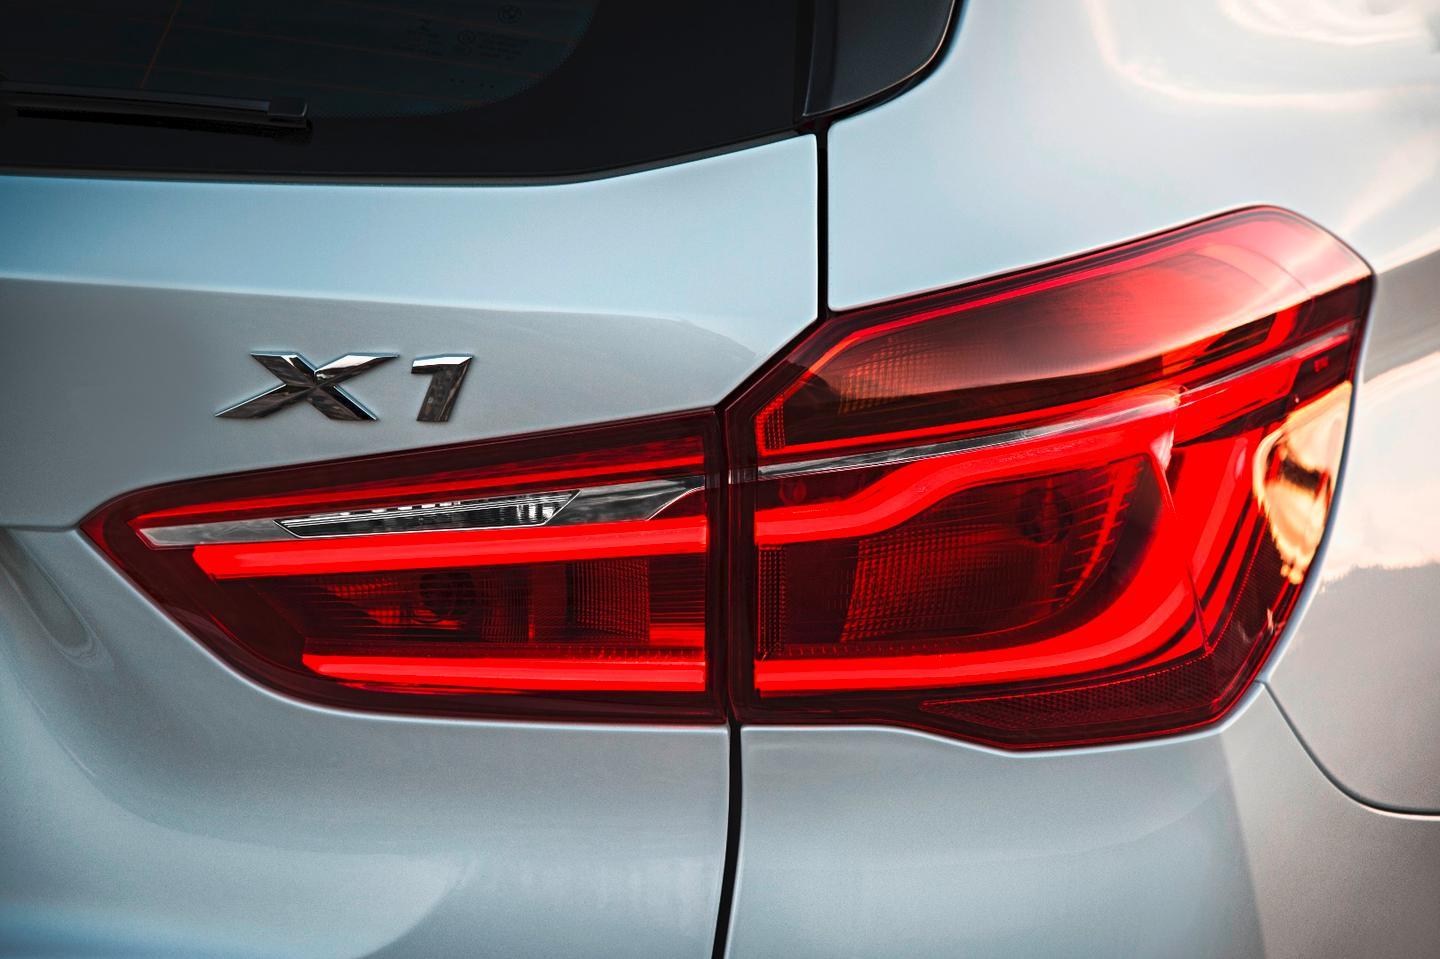 The new X1's styling has been brought in line with the rest of BMW's range